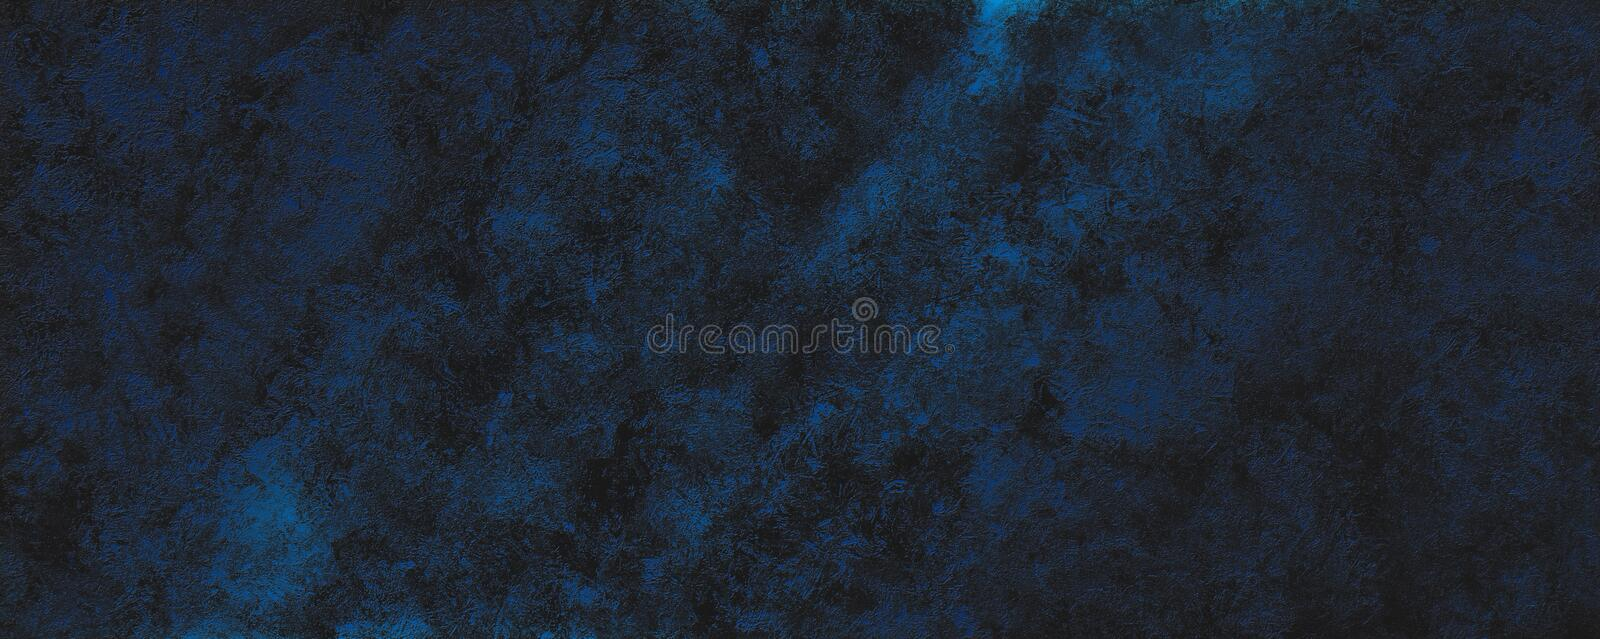 Decorative abstract grunge black and blue background texture royalty free stock photos